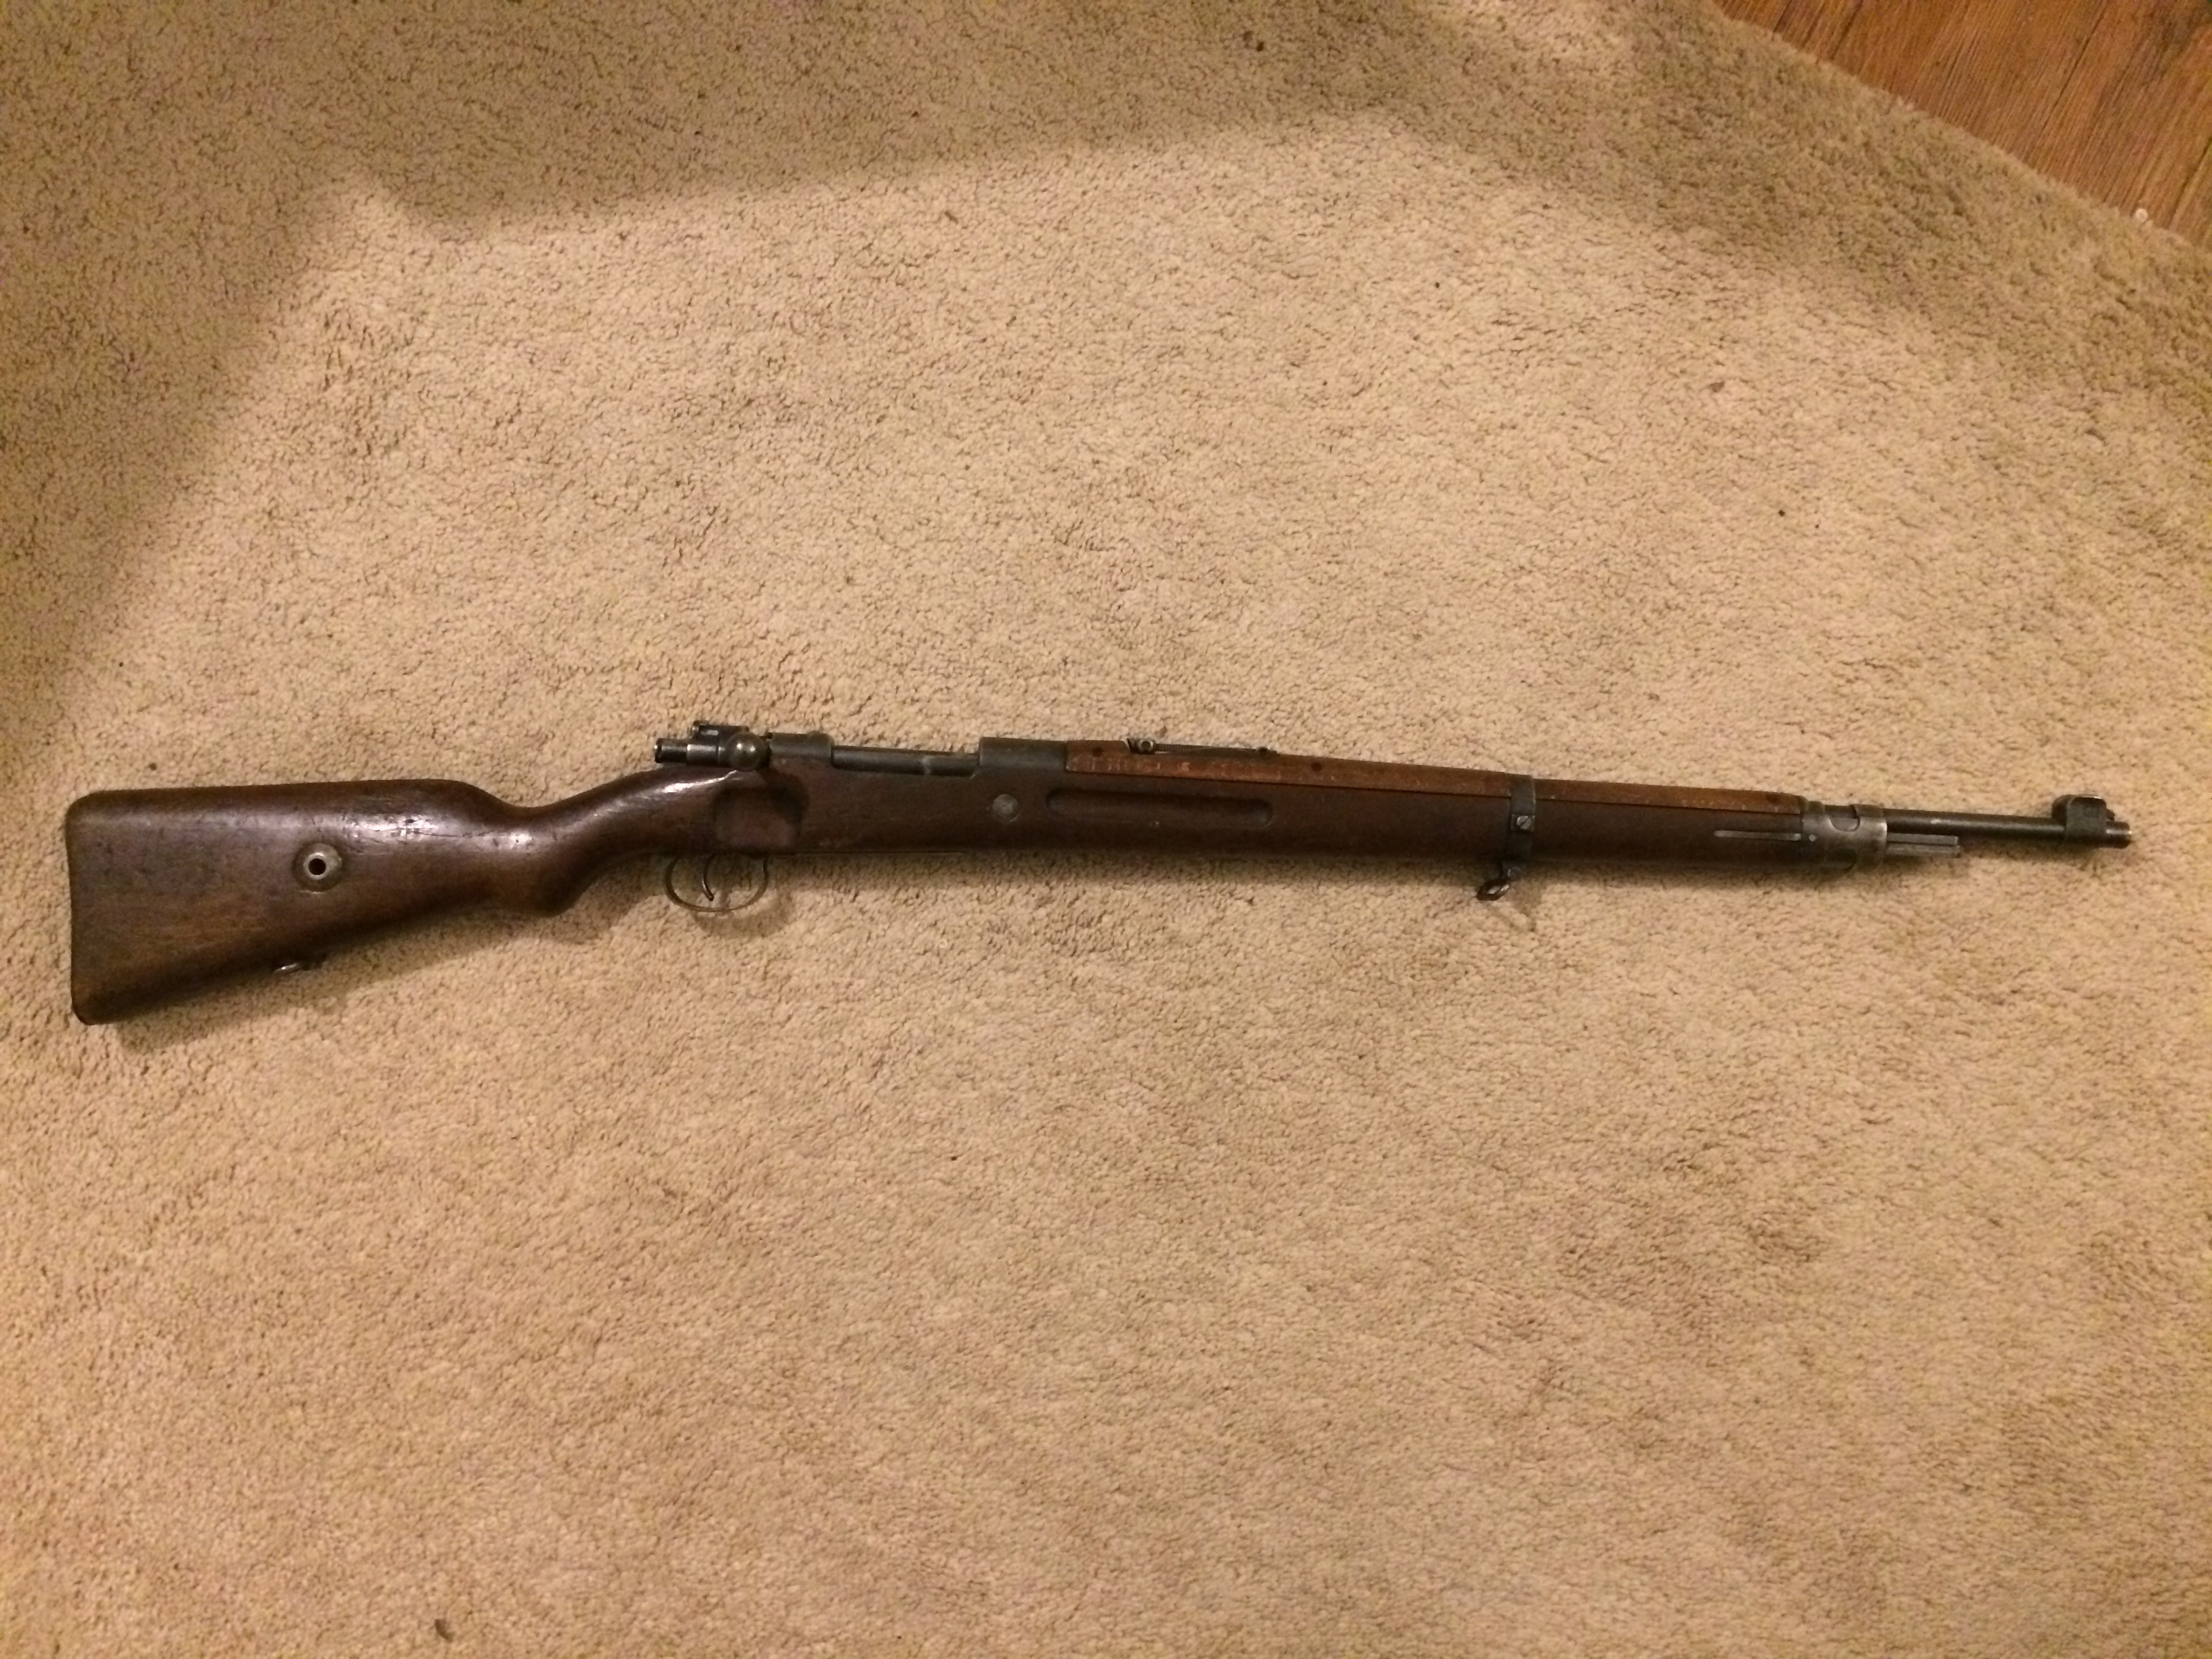 What can you tell me about this Polish mauser?